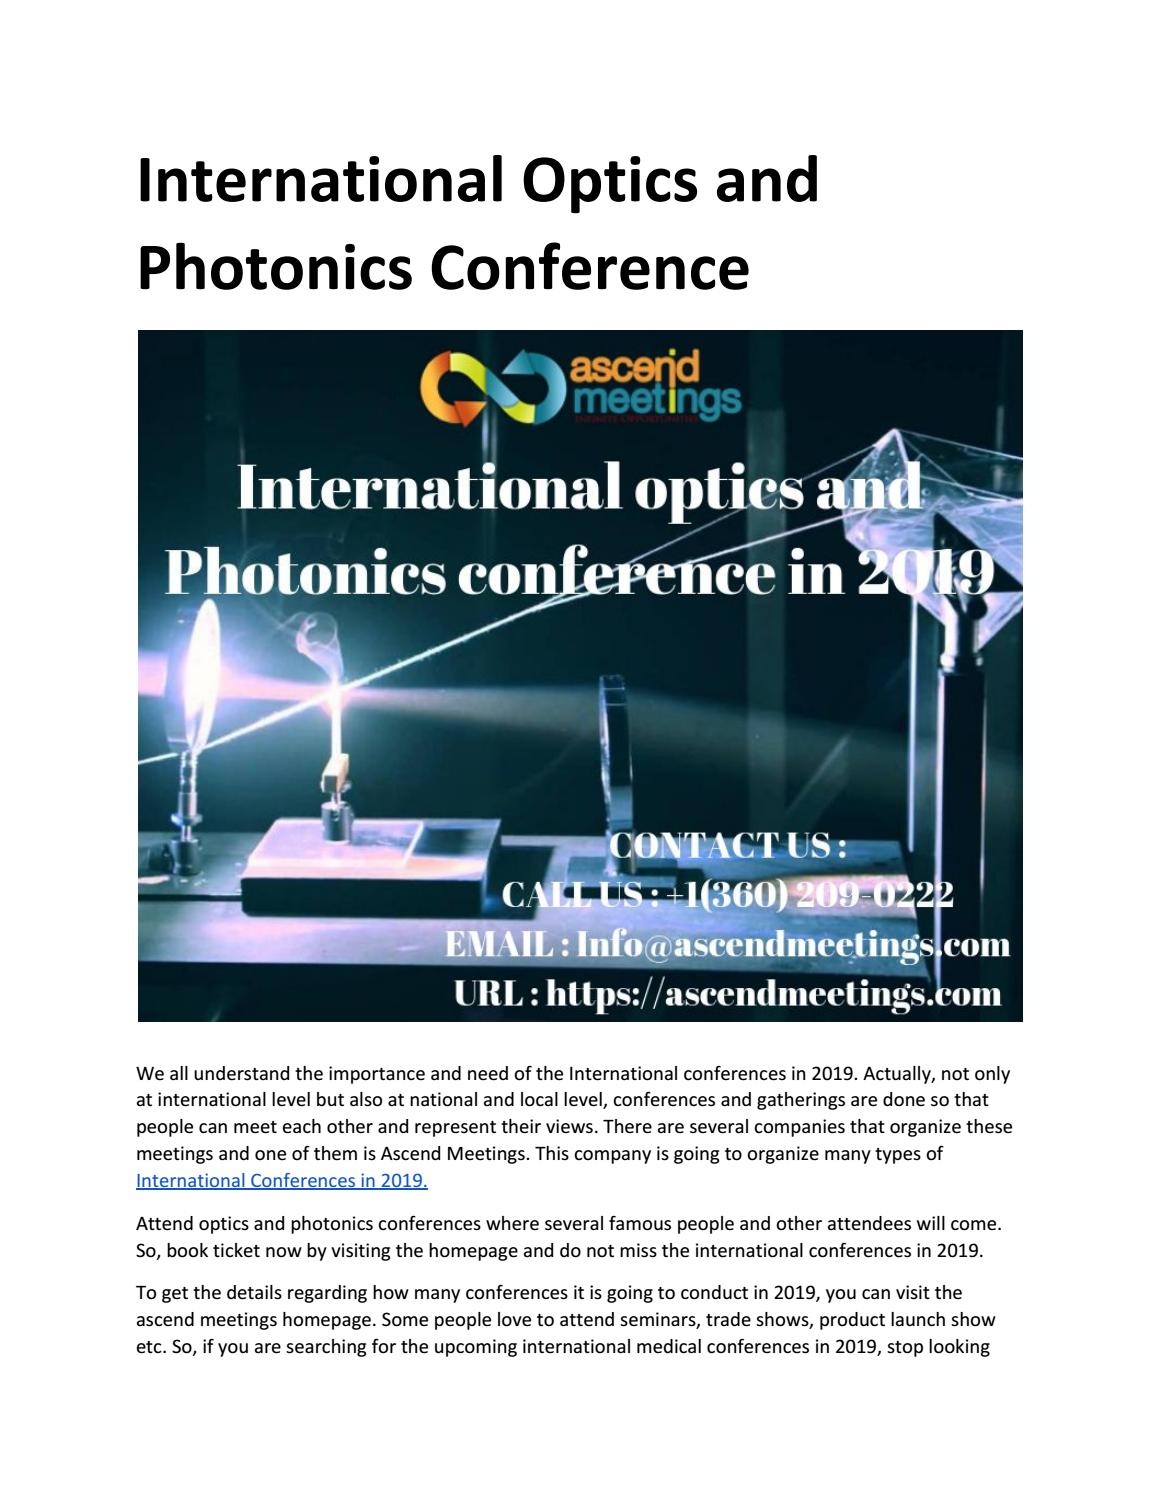 International Optics and Photonics Conference by ascendmeetingsseo